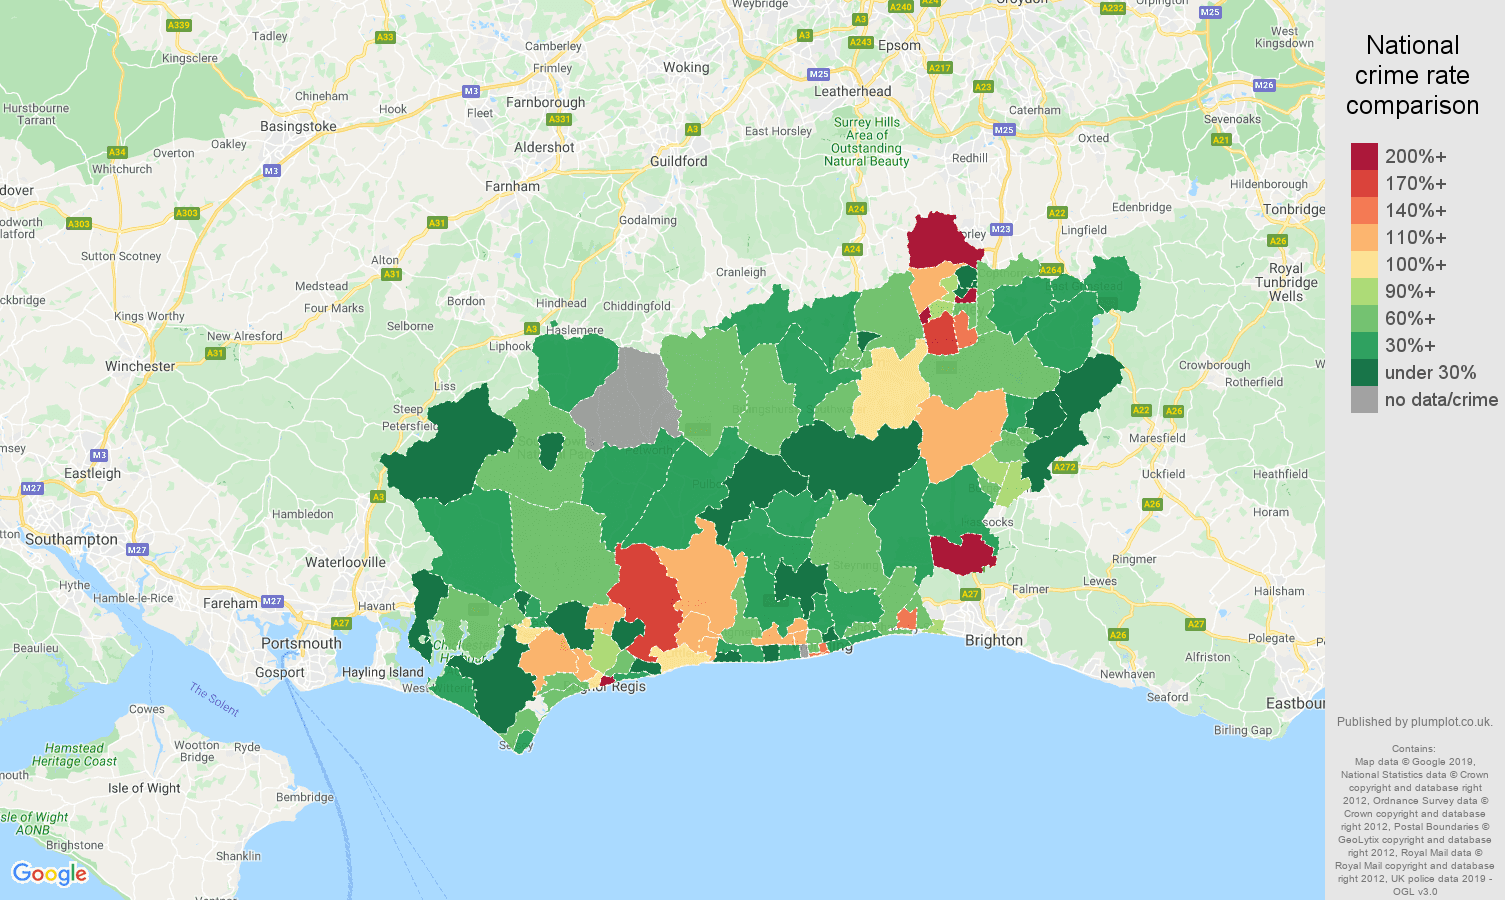 West Sussex other crime rate comparison map